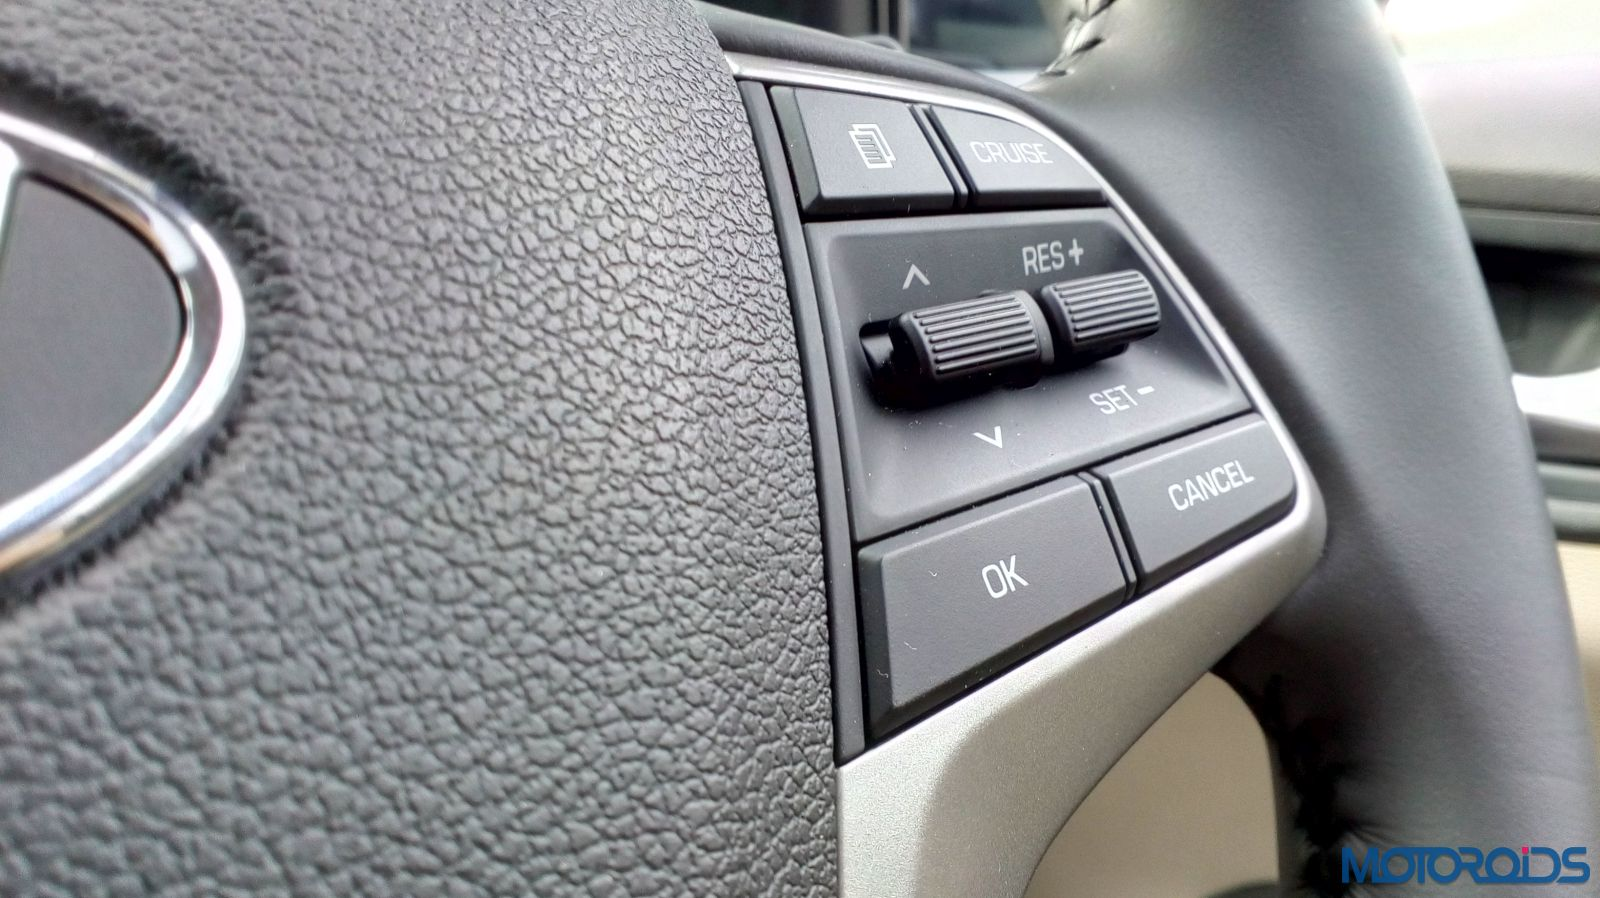 August 28, 2017-New-2017-Next-gen-Hyundai-Verna-steering-controls38.jpg